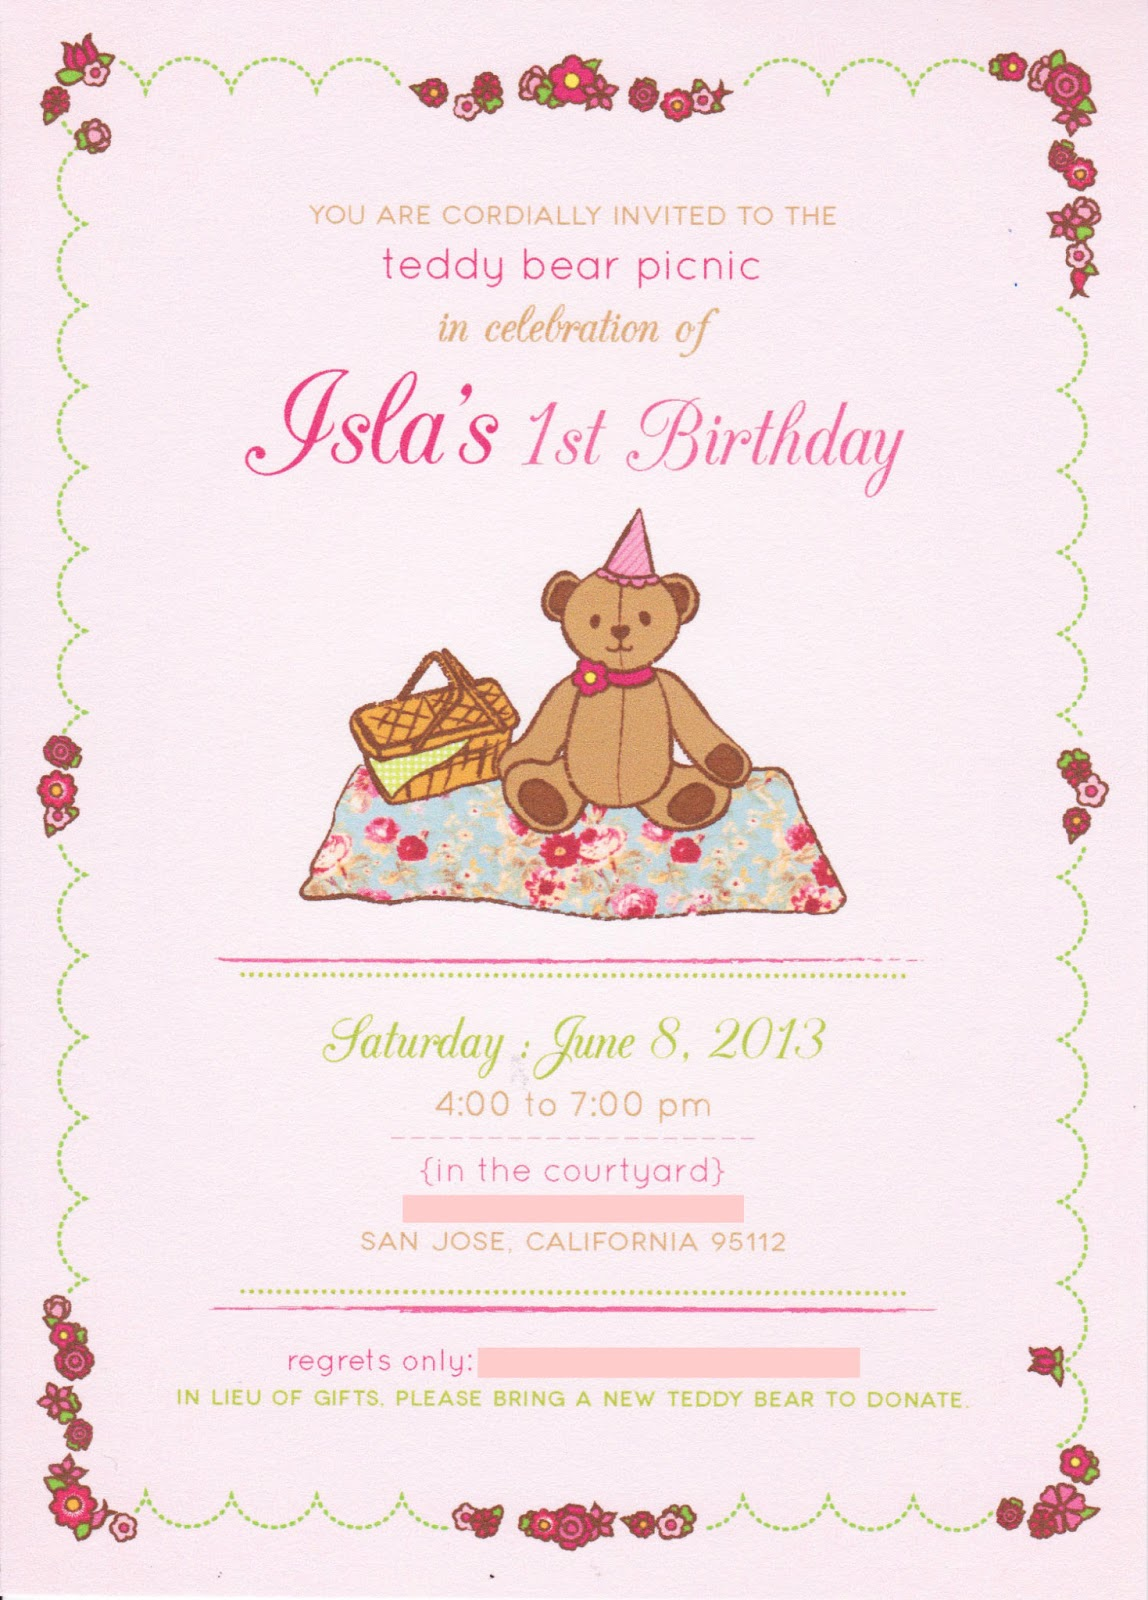 Third and Patterson: Teddy Bear Picnic 1st Birthday